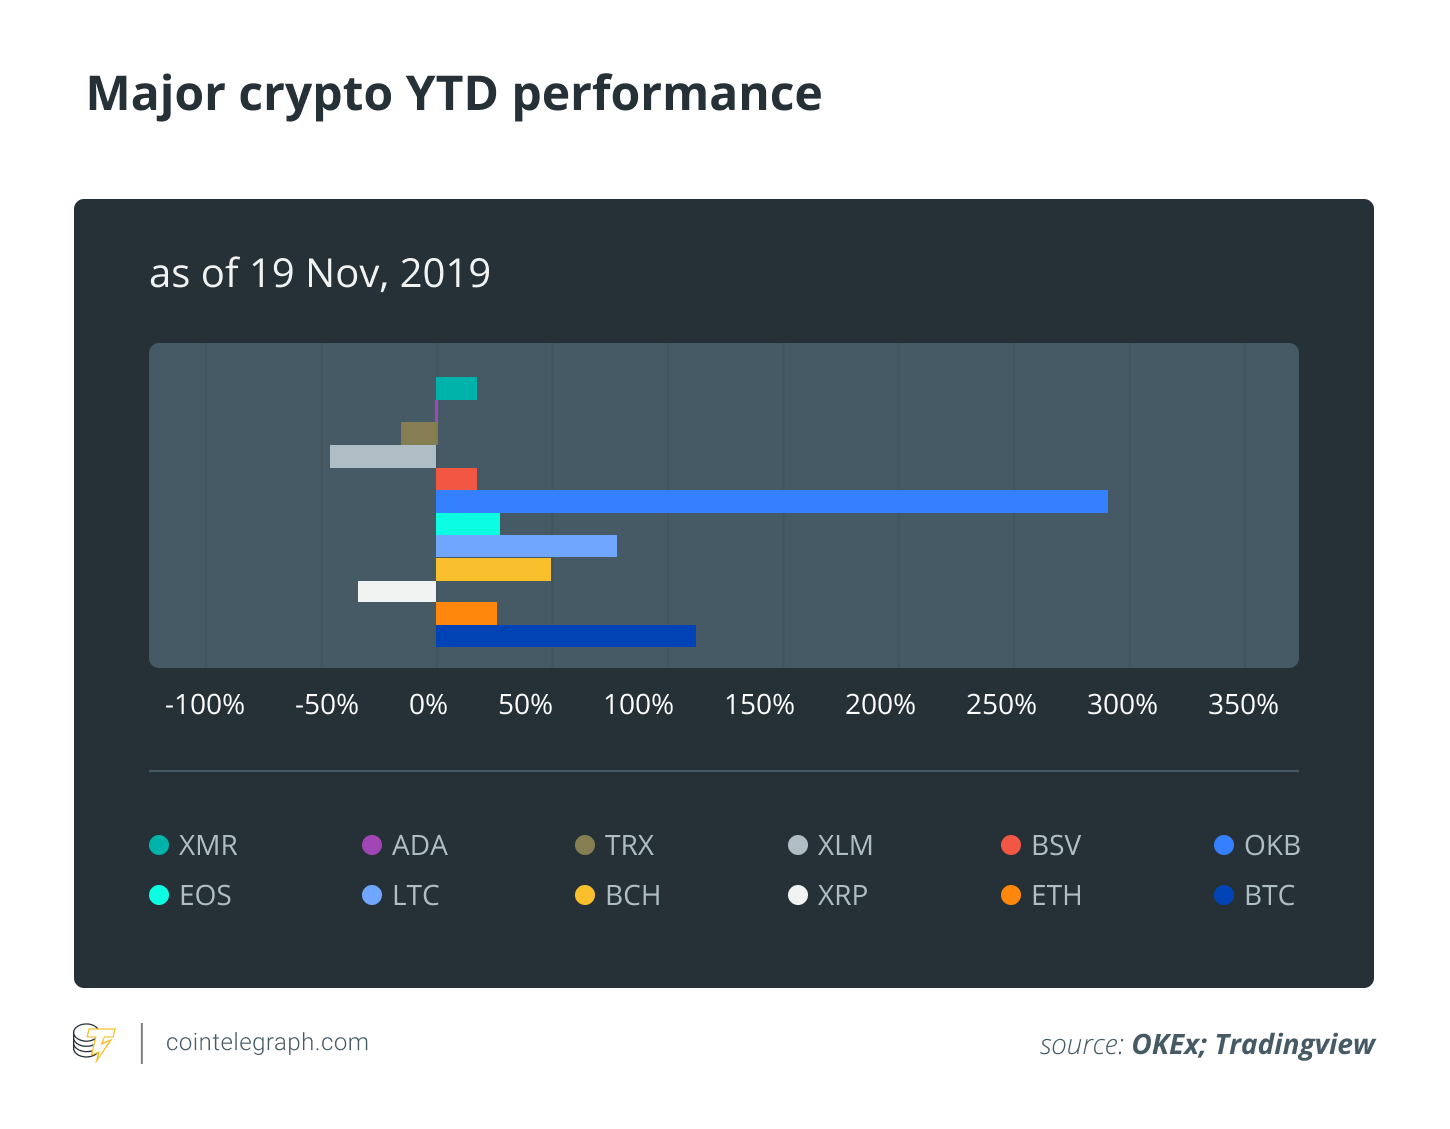 Major crypto YTD performance